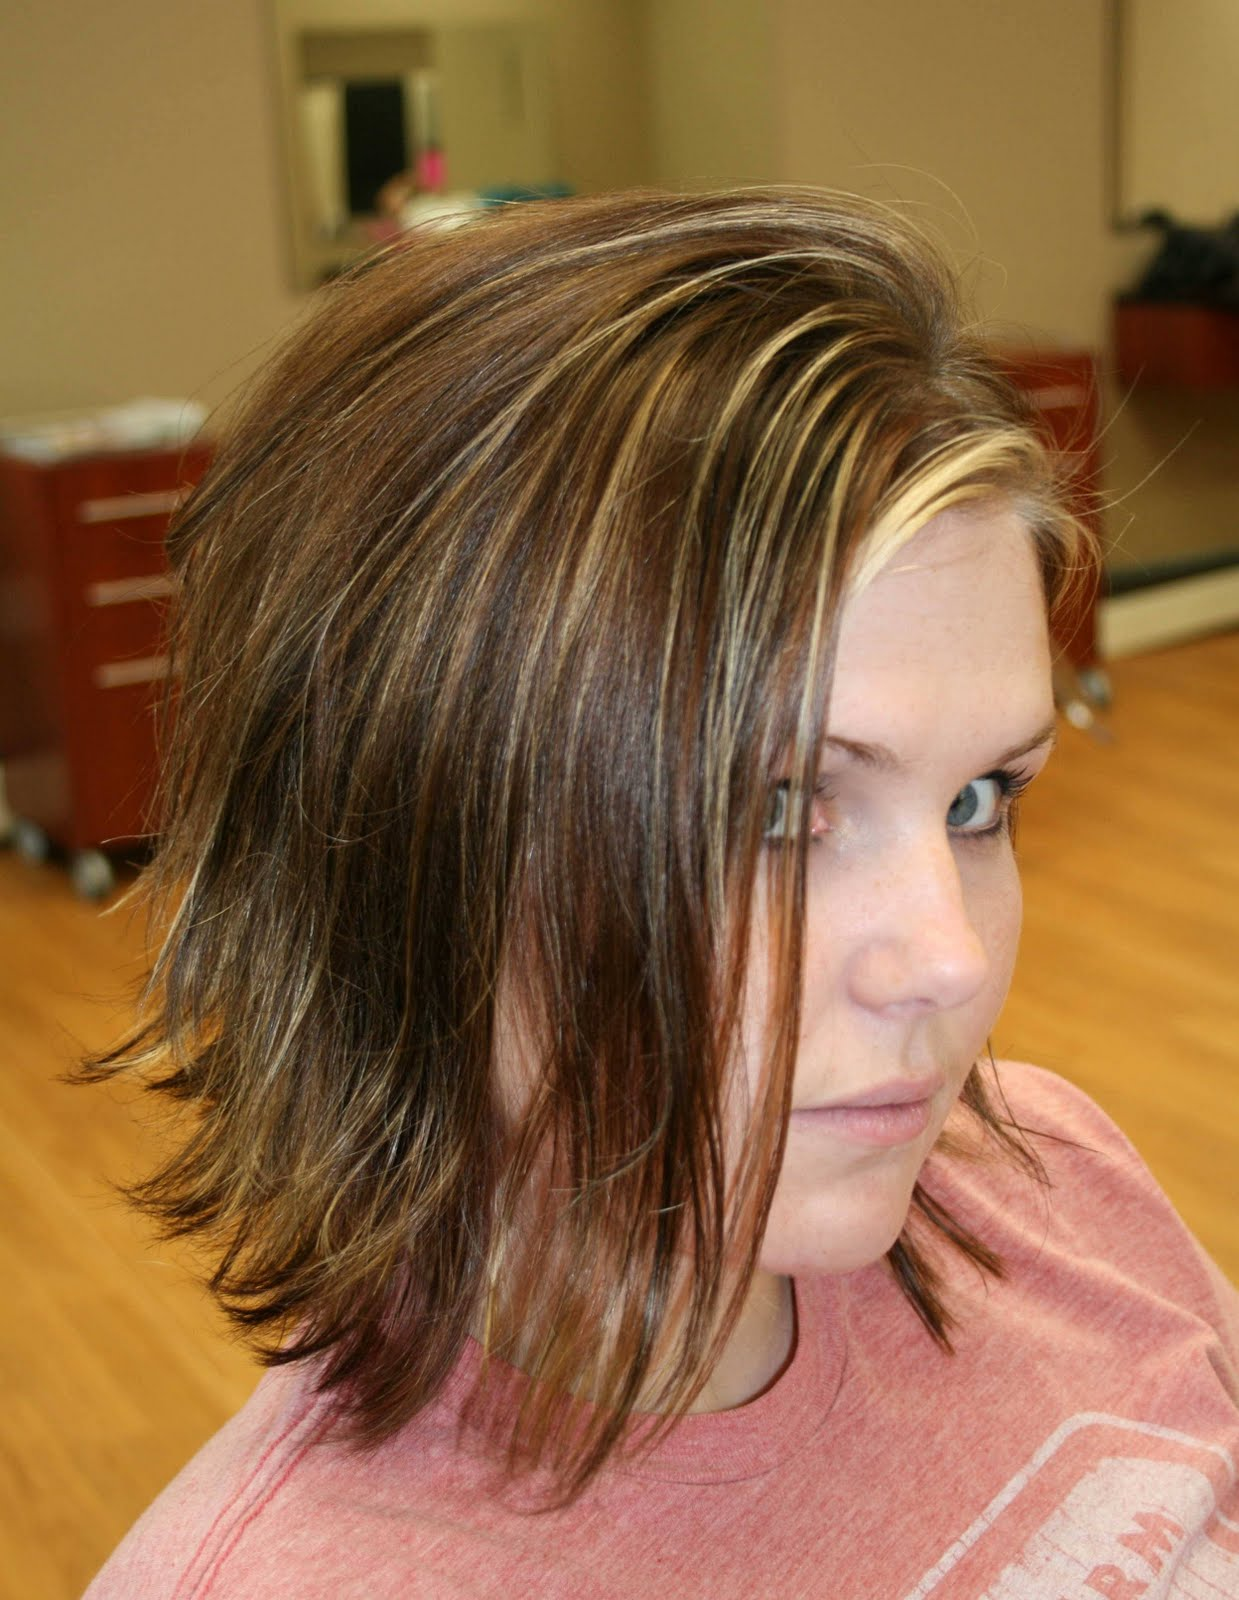 razor bob cut hairstyles : Haircuts and Hairstyles: Trendy Hairstyles with Modern and Chic Bob ...